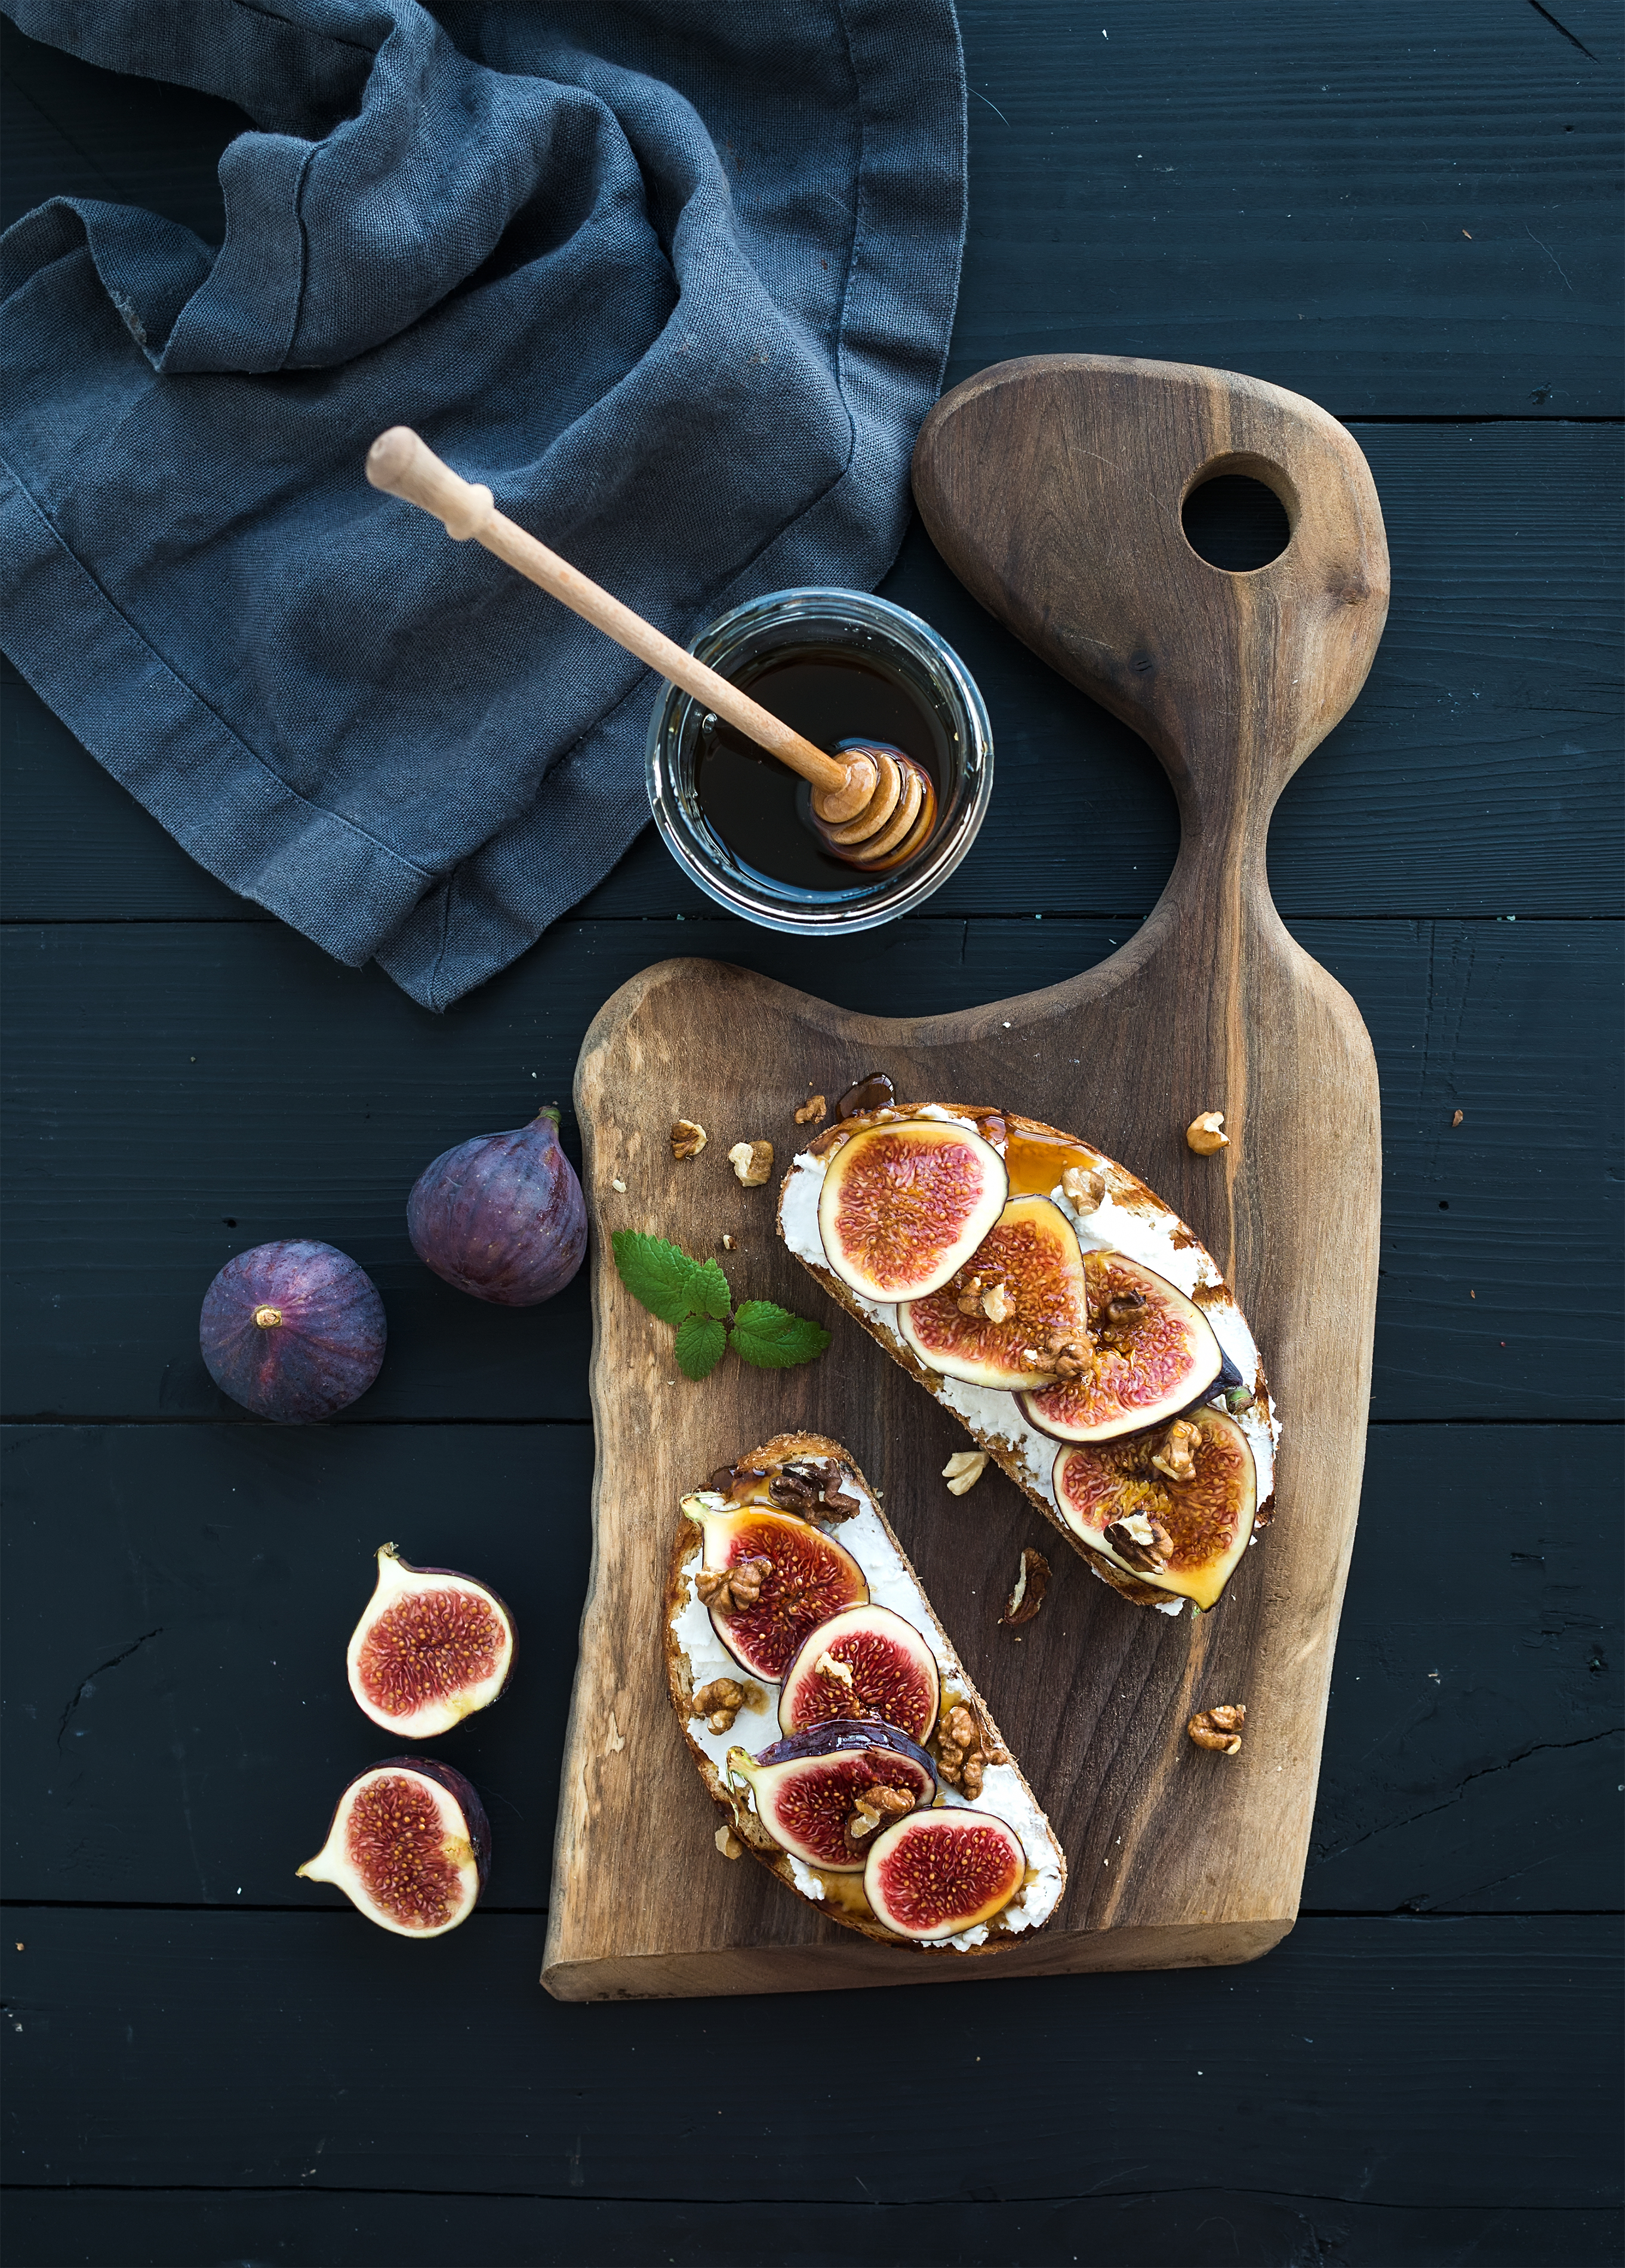 Sandwiches with ricotta, fresh figs, walnuts and honey on rustic wooden board over black backdrop, top view